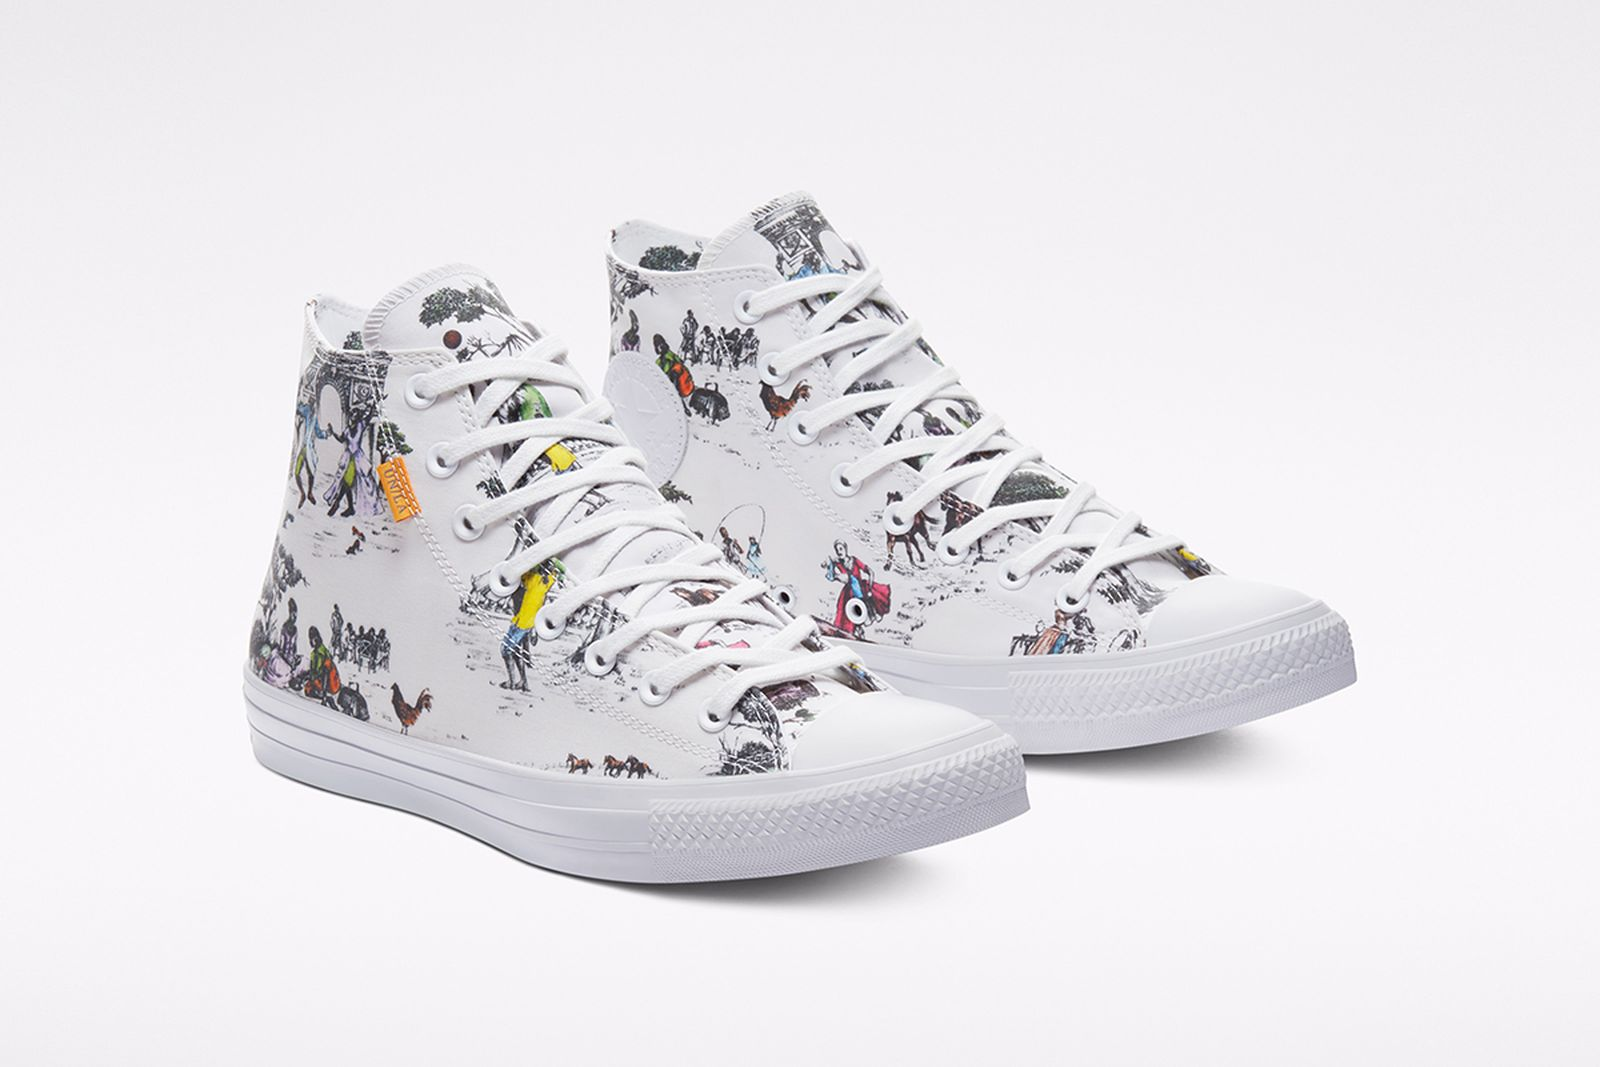 union-converse-chuck-taylor-all-star-release-date-price-1-03